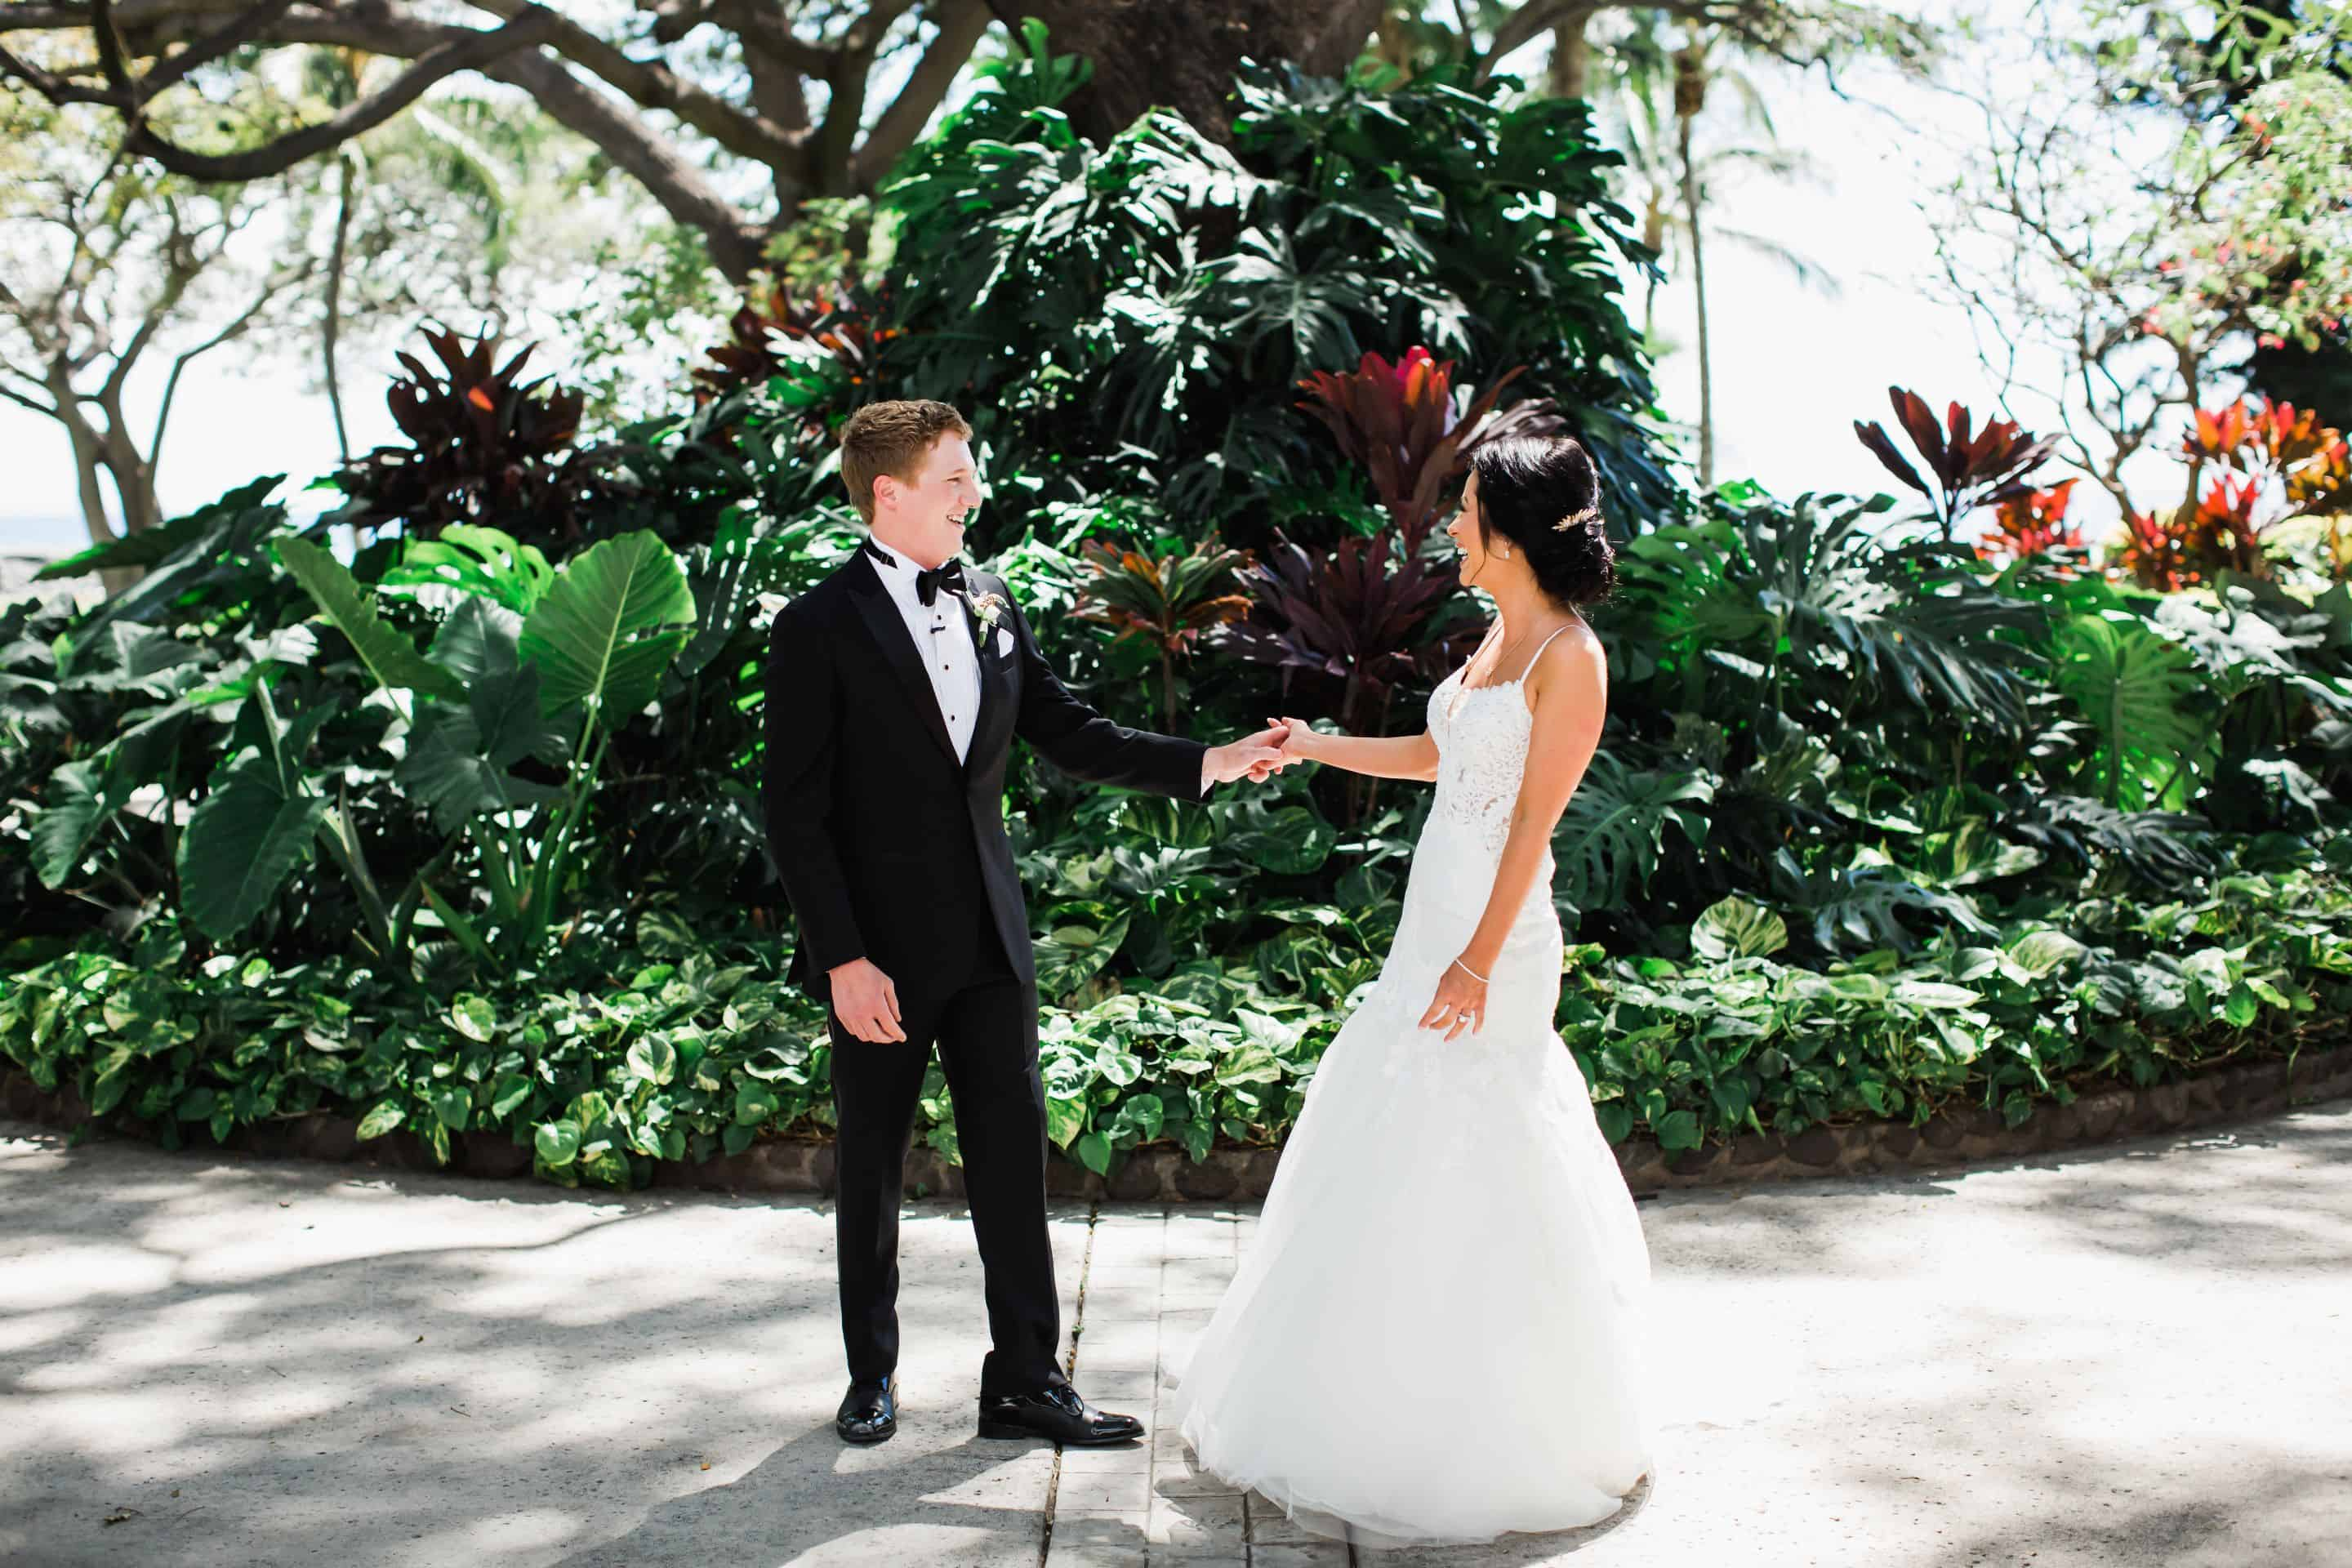 Destination wedding first look at Olowalu Plantation House | Maui's Angels